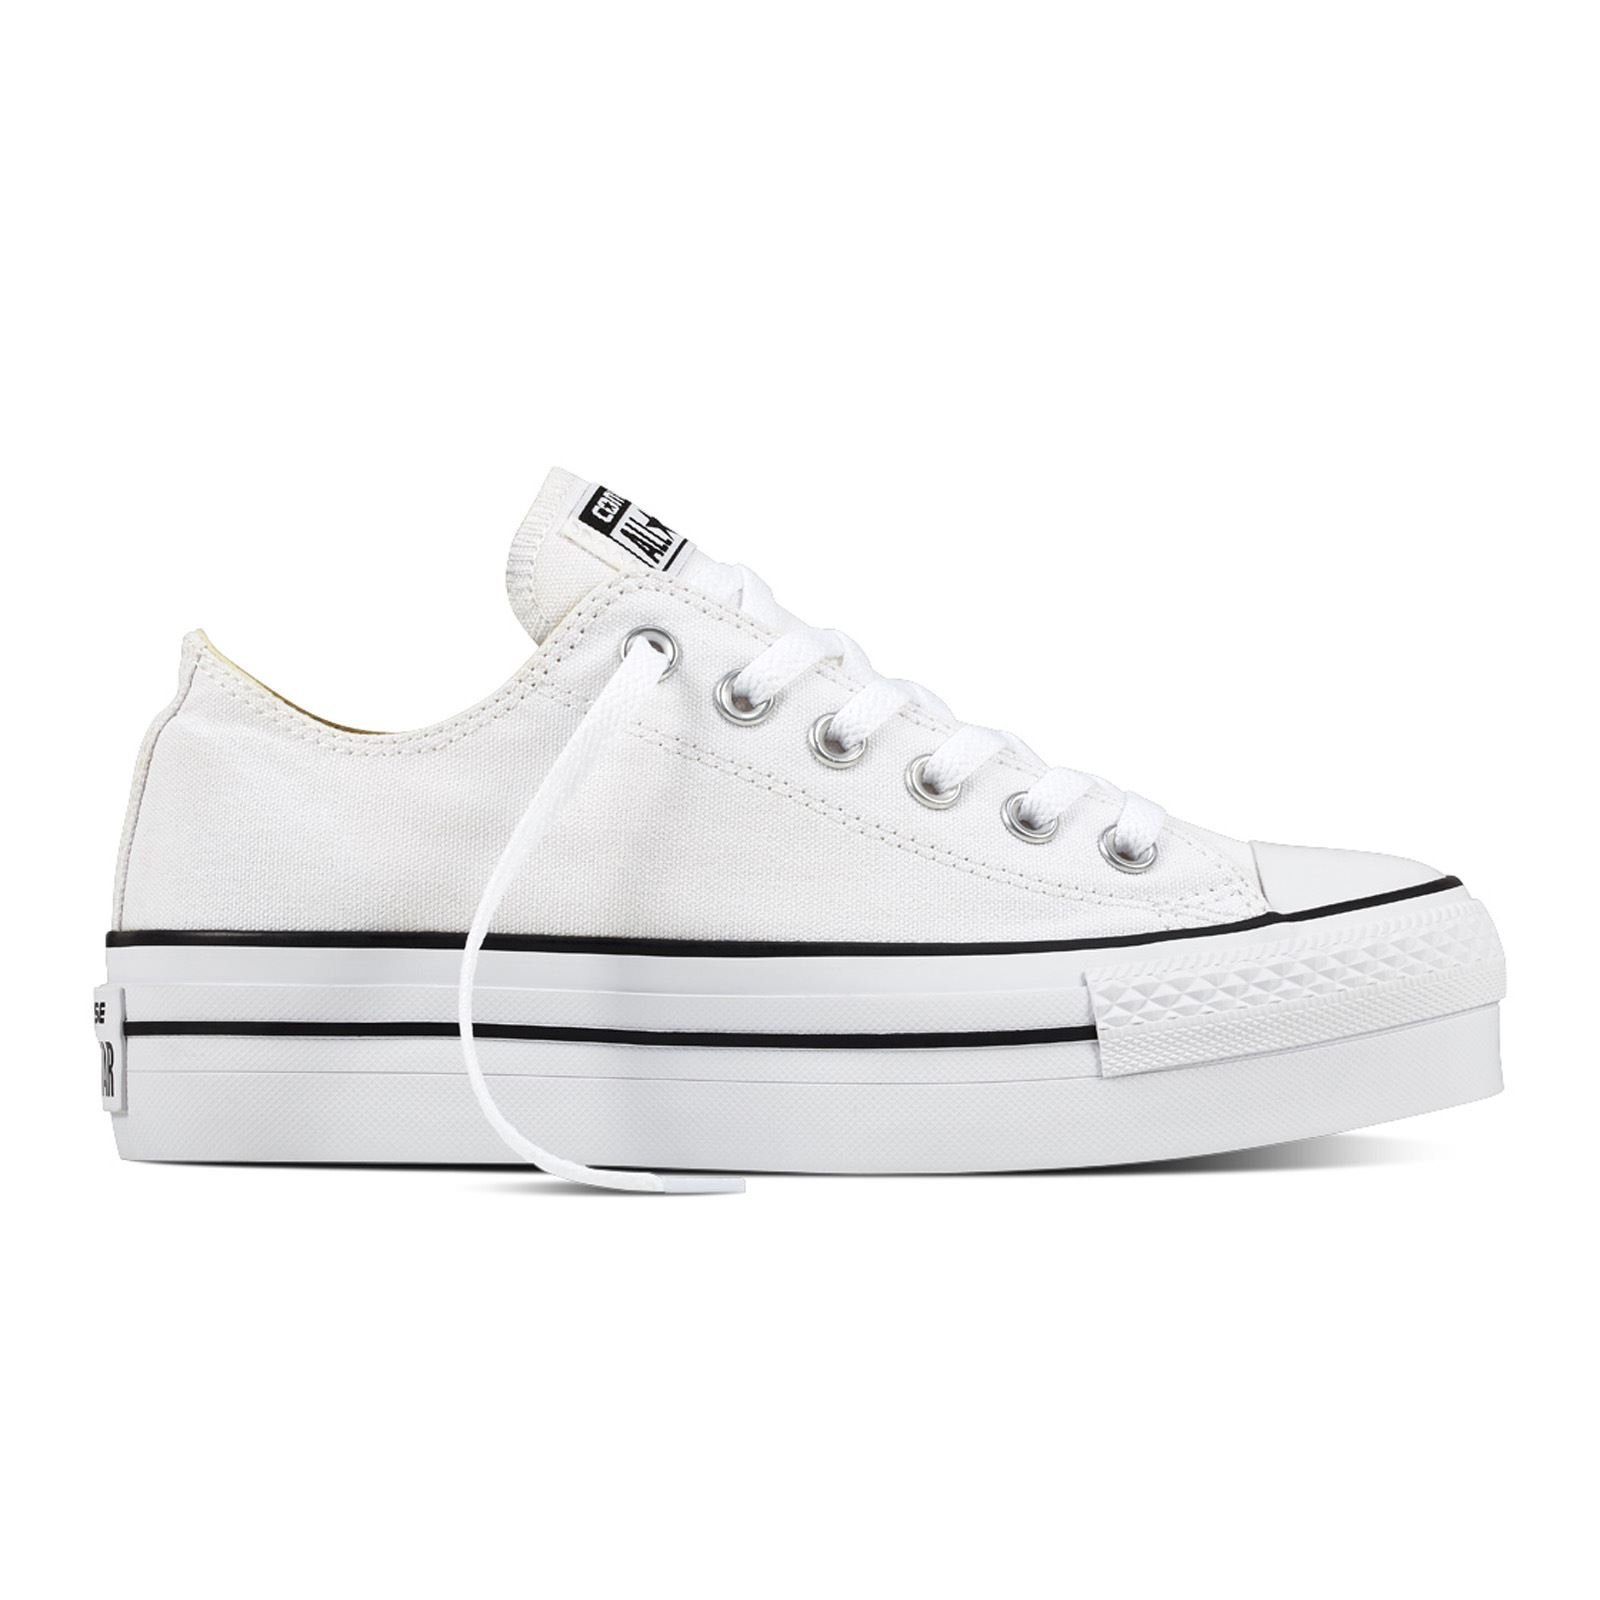 Converse Womens Chuck Taylor Platform White Canvas Trainers 8 US